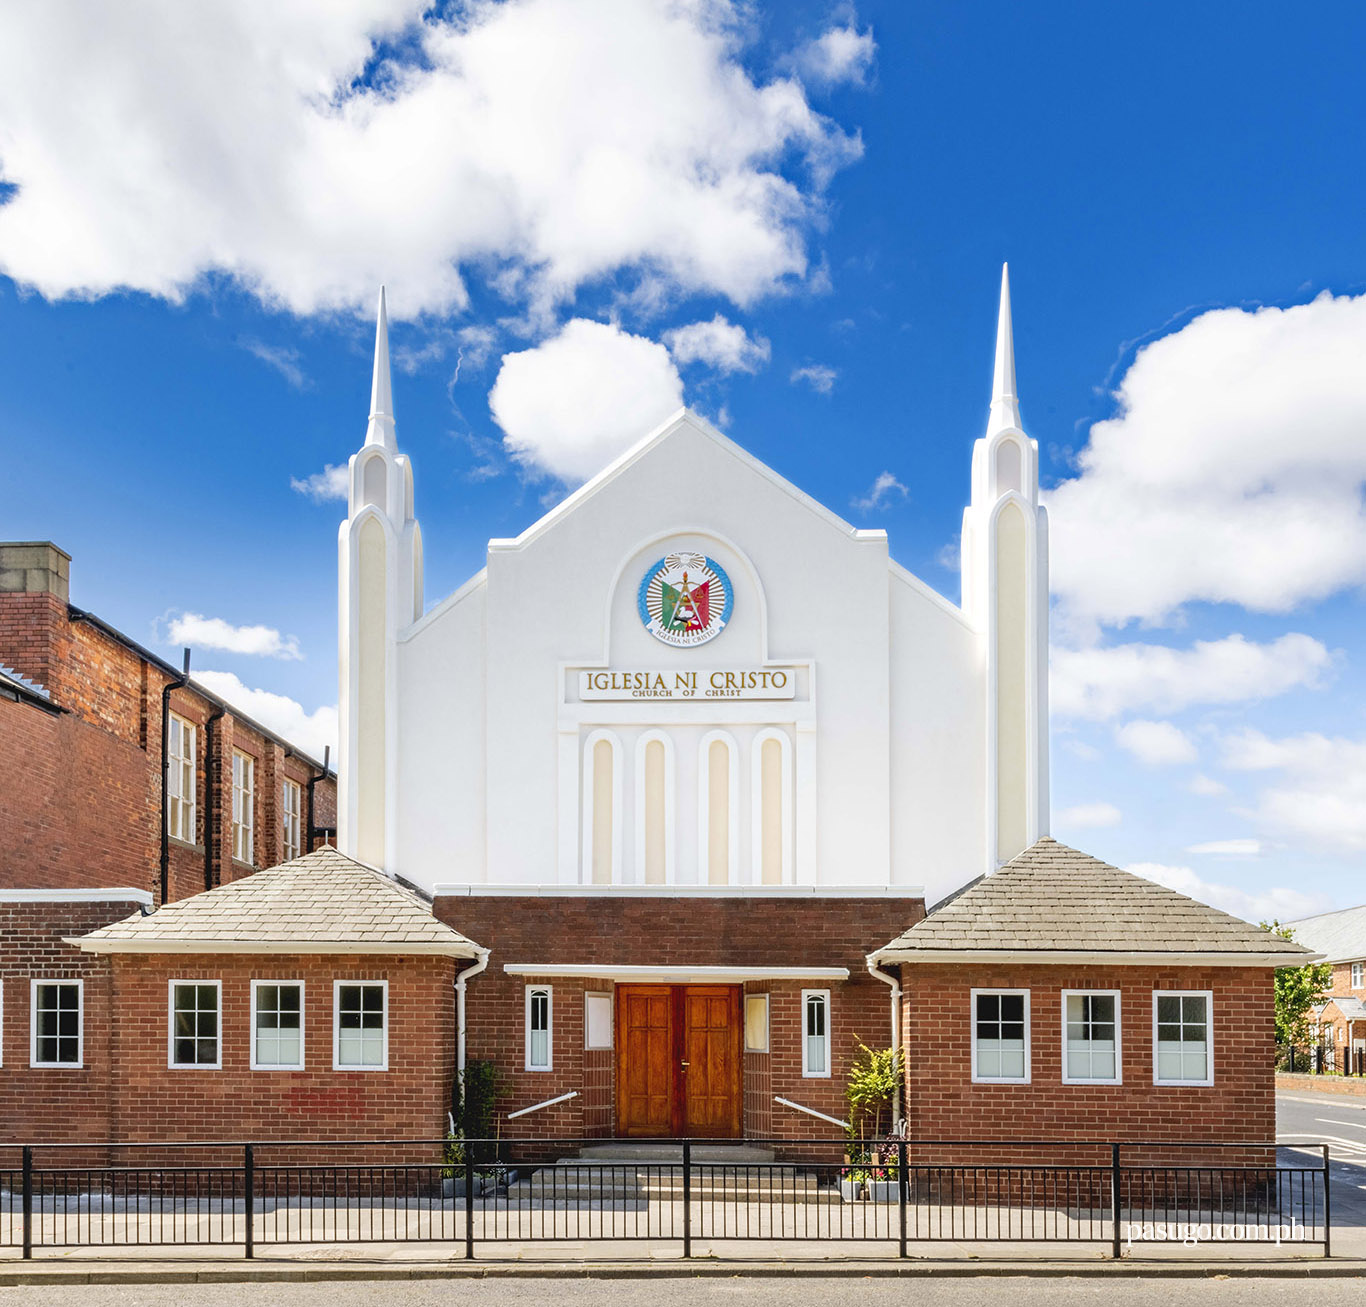 The house of worship of North Shields Congregation in United Kingdom dedicated on June 30, 2019